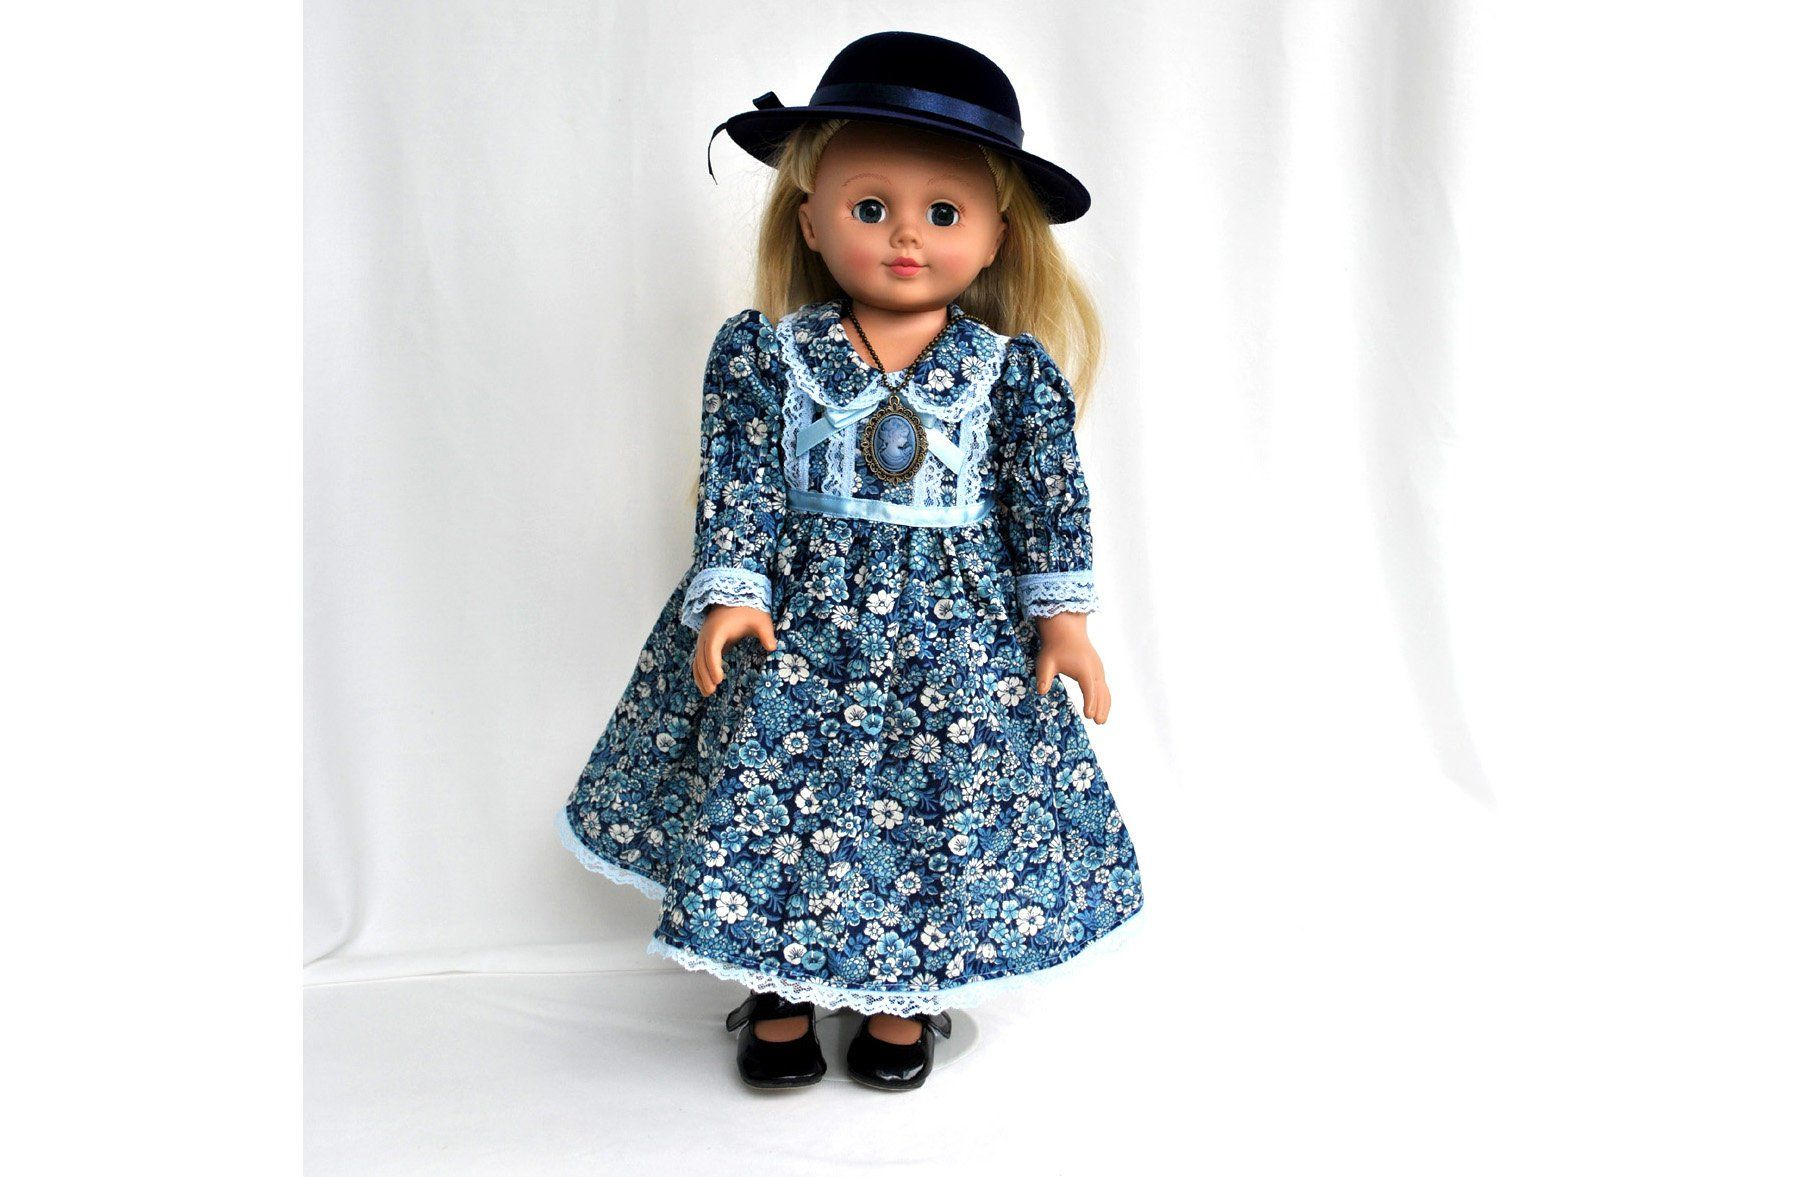 Historical Doll Clothes 18 inch doll 1900s Victorian Colonial Dresses with Hat, Black Shoes, Lady Hat Filicity